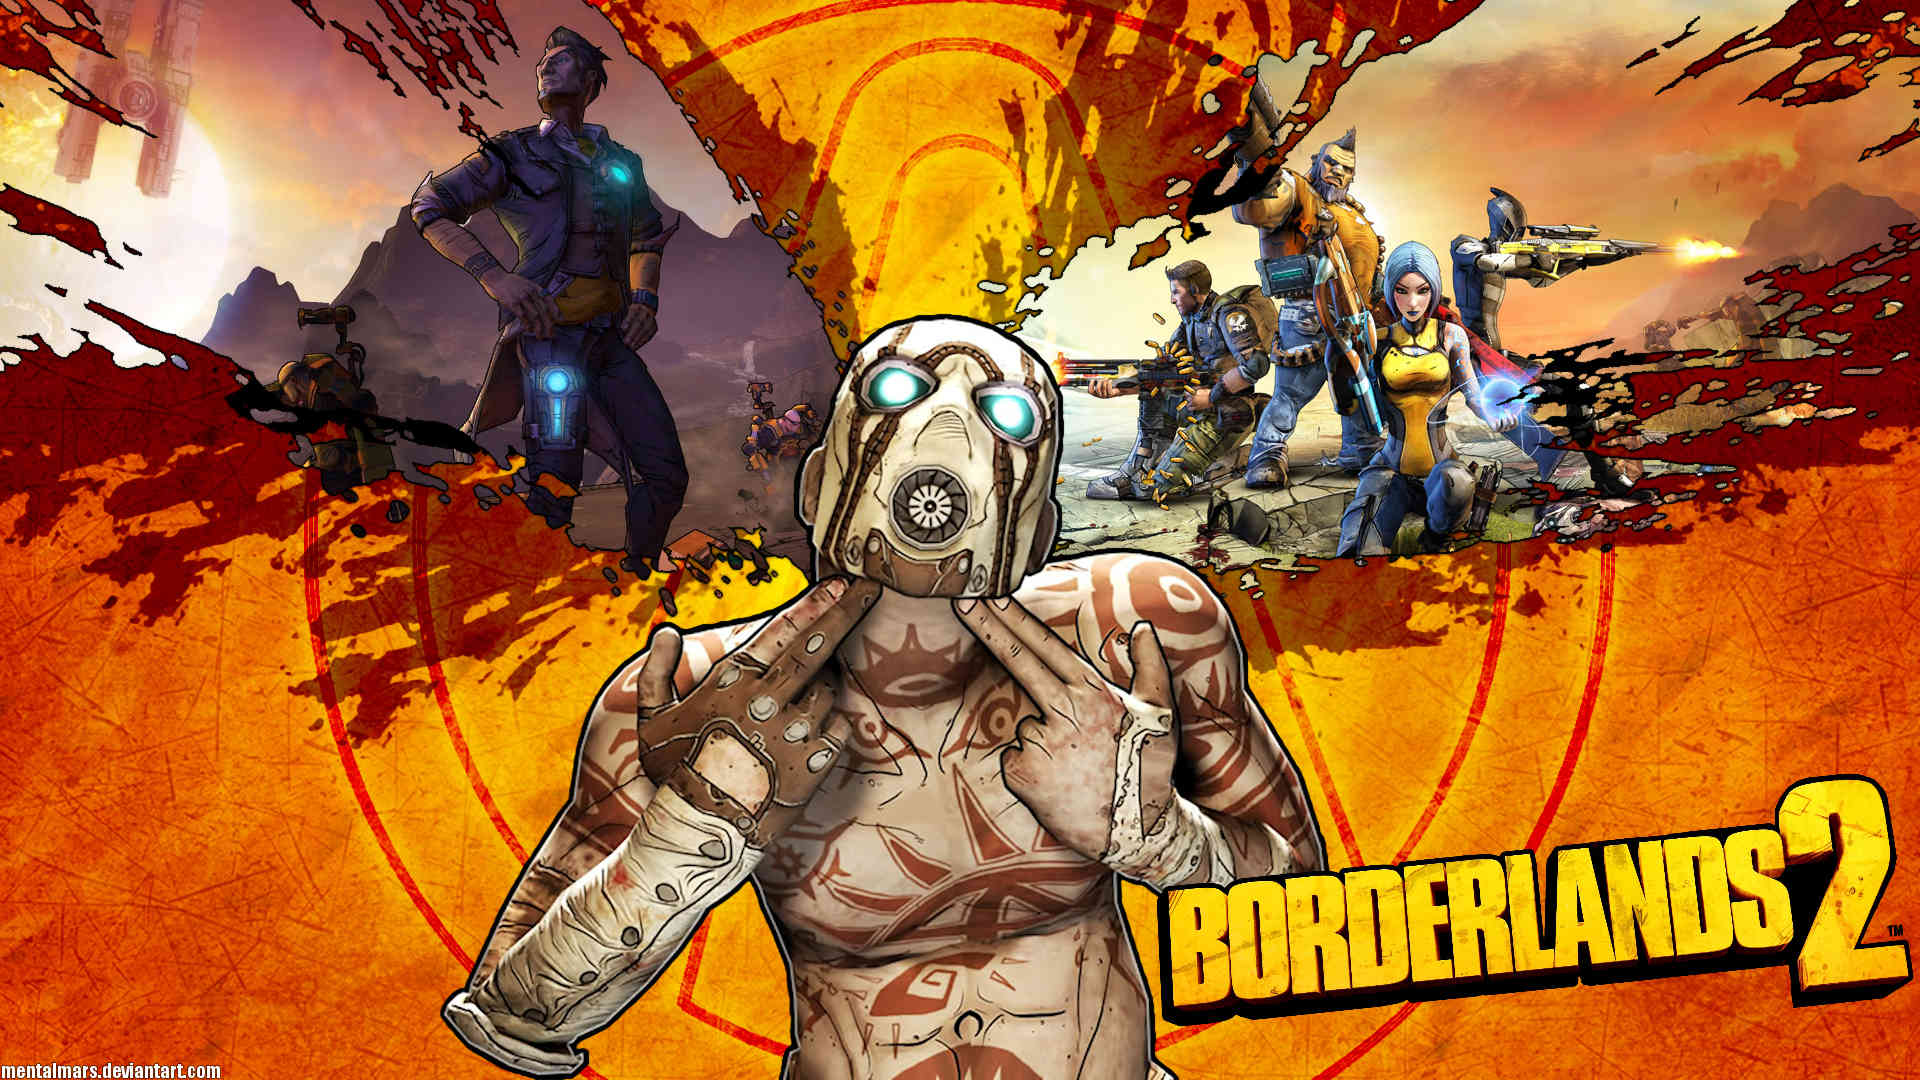 borderlands-2-wallpaper-9_20130206130200.jpg